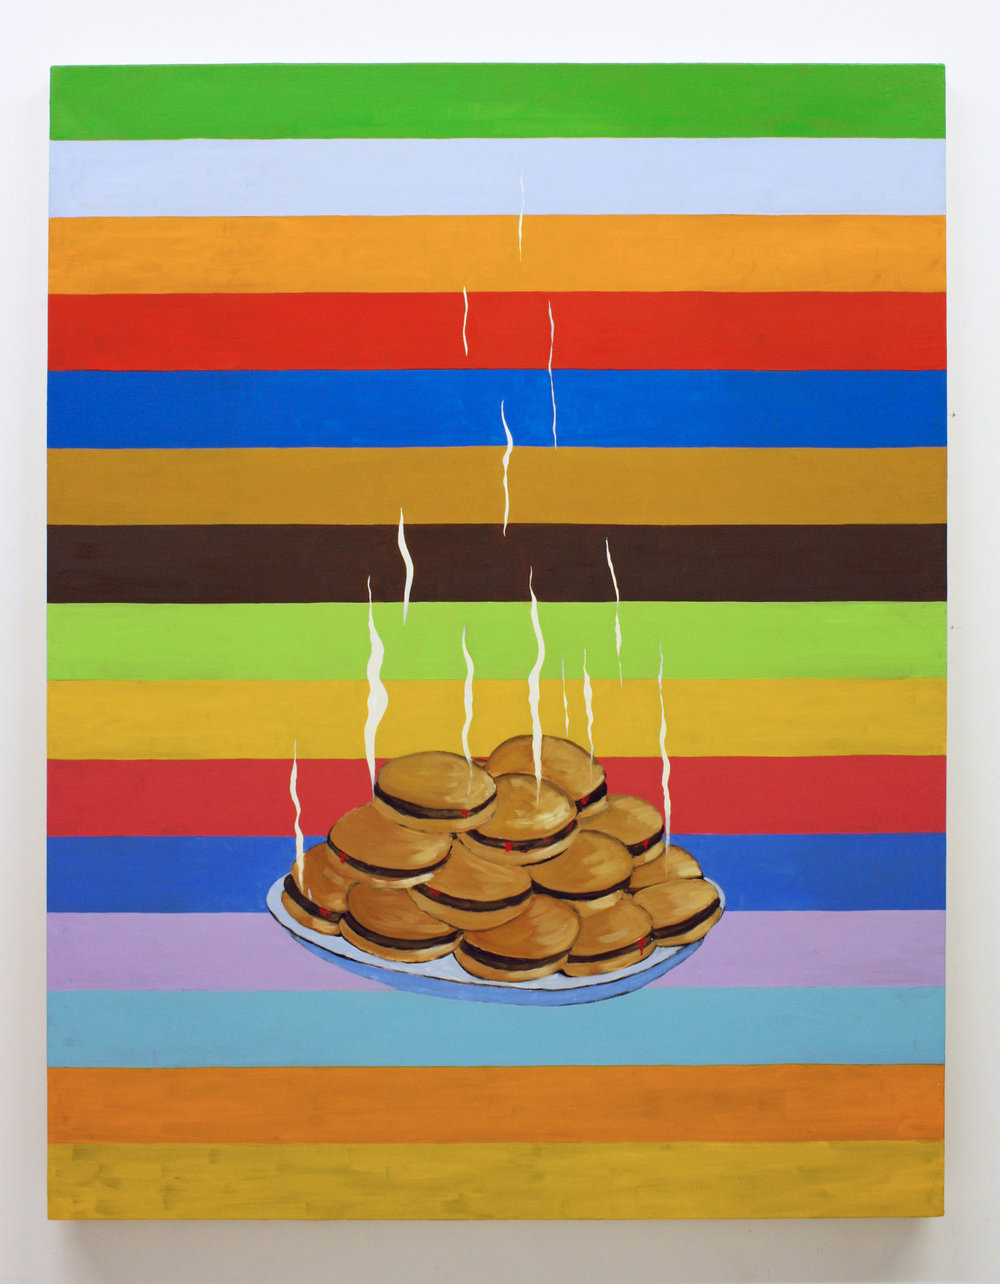 """Untitled, (Hamburgers)"", 2017 , oil on canvas, 60 x 46 inches"